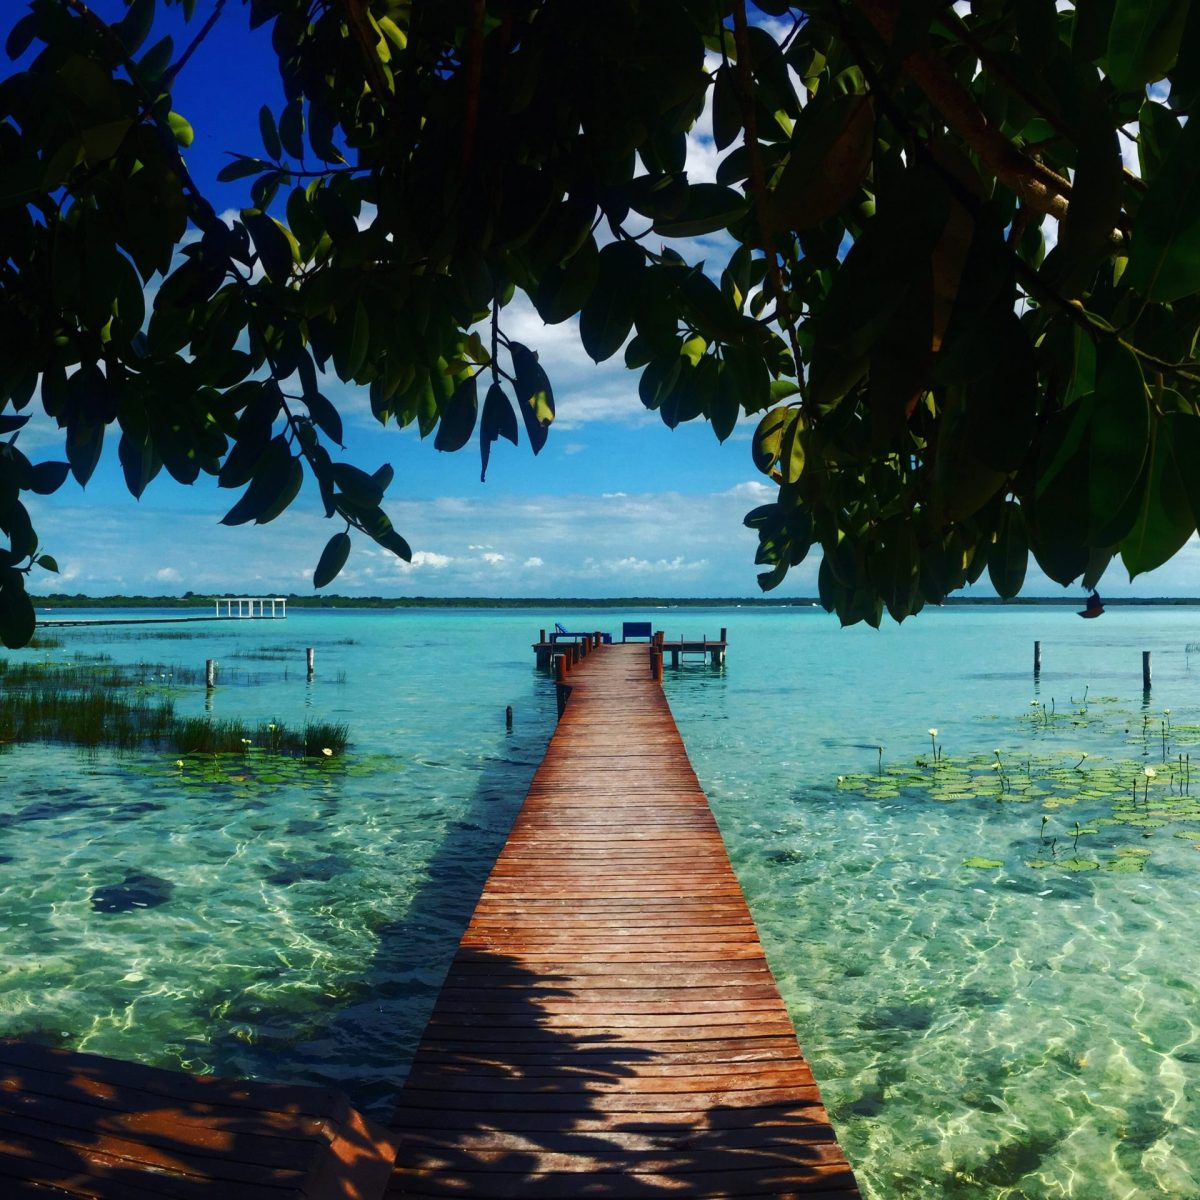 Bacalar, the breathtaking seven colored lagoon